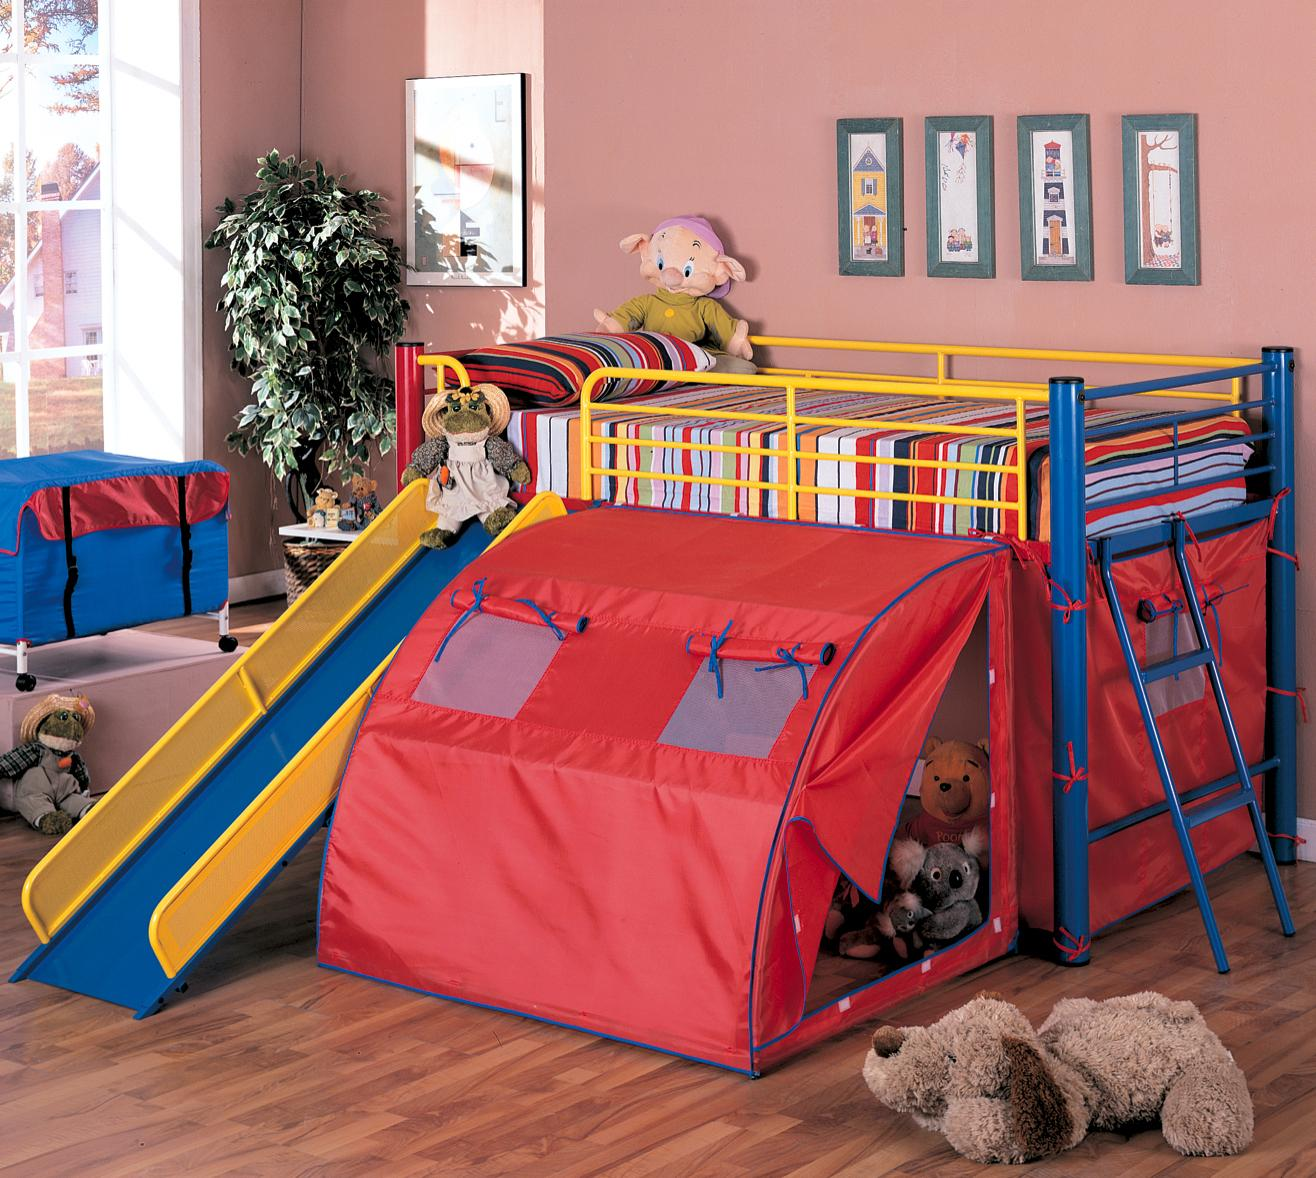 Bunk beds with slide and tent - Bunk Beds With Slide And Tent 19